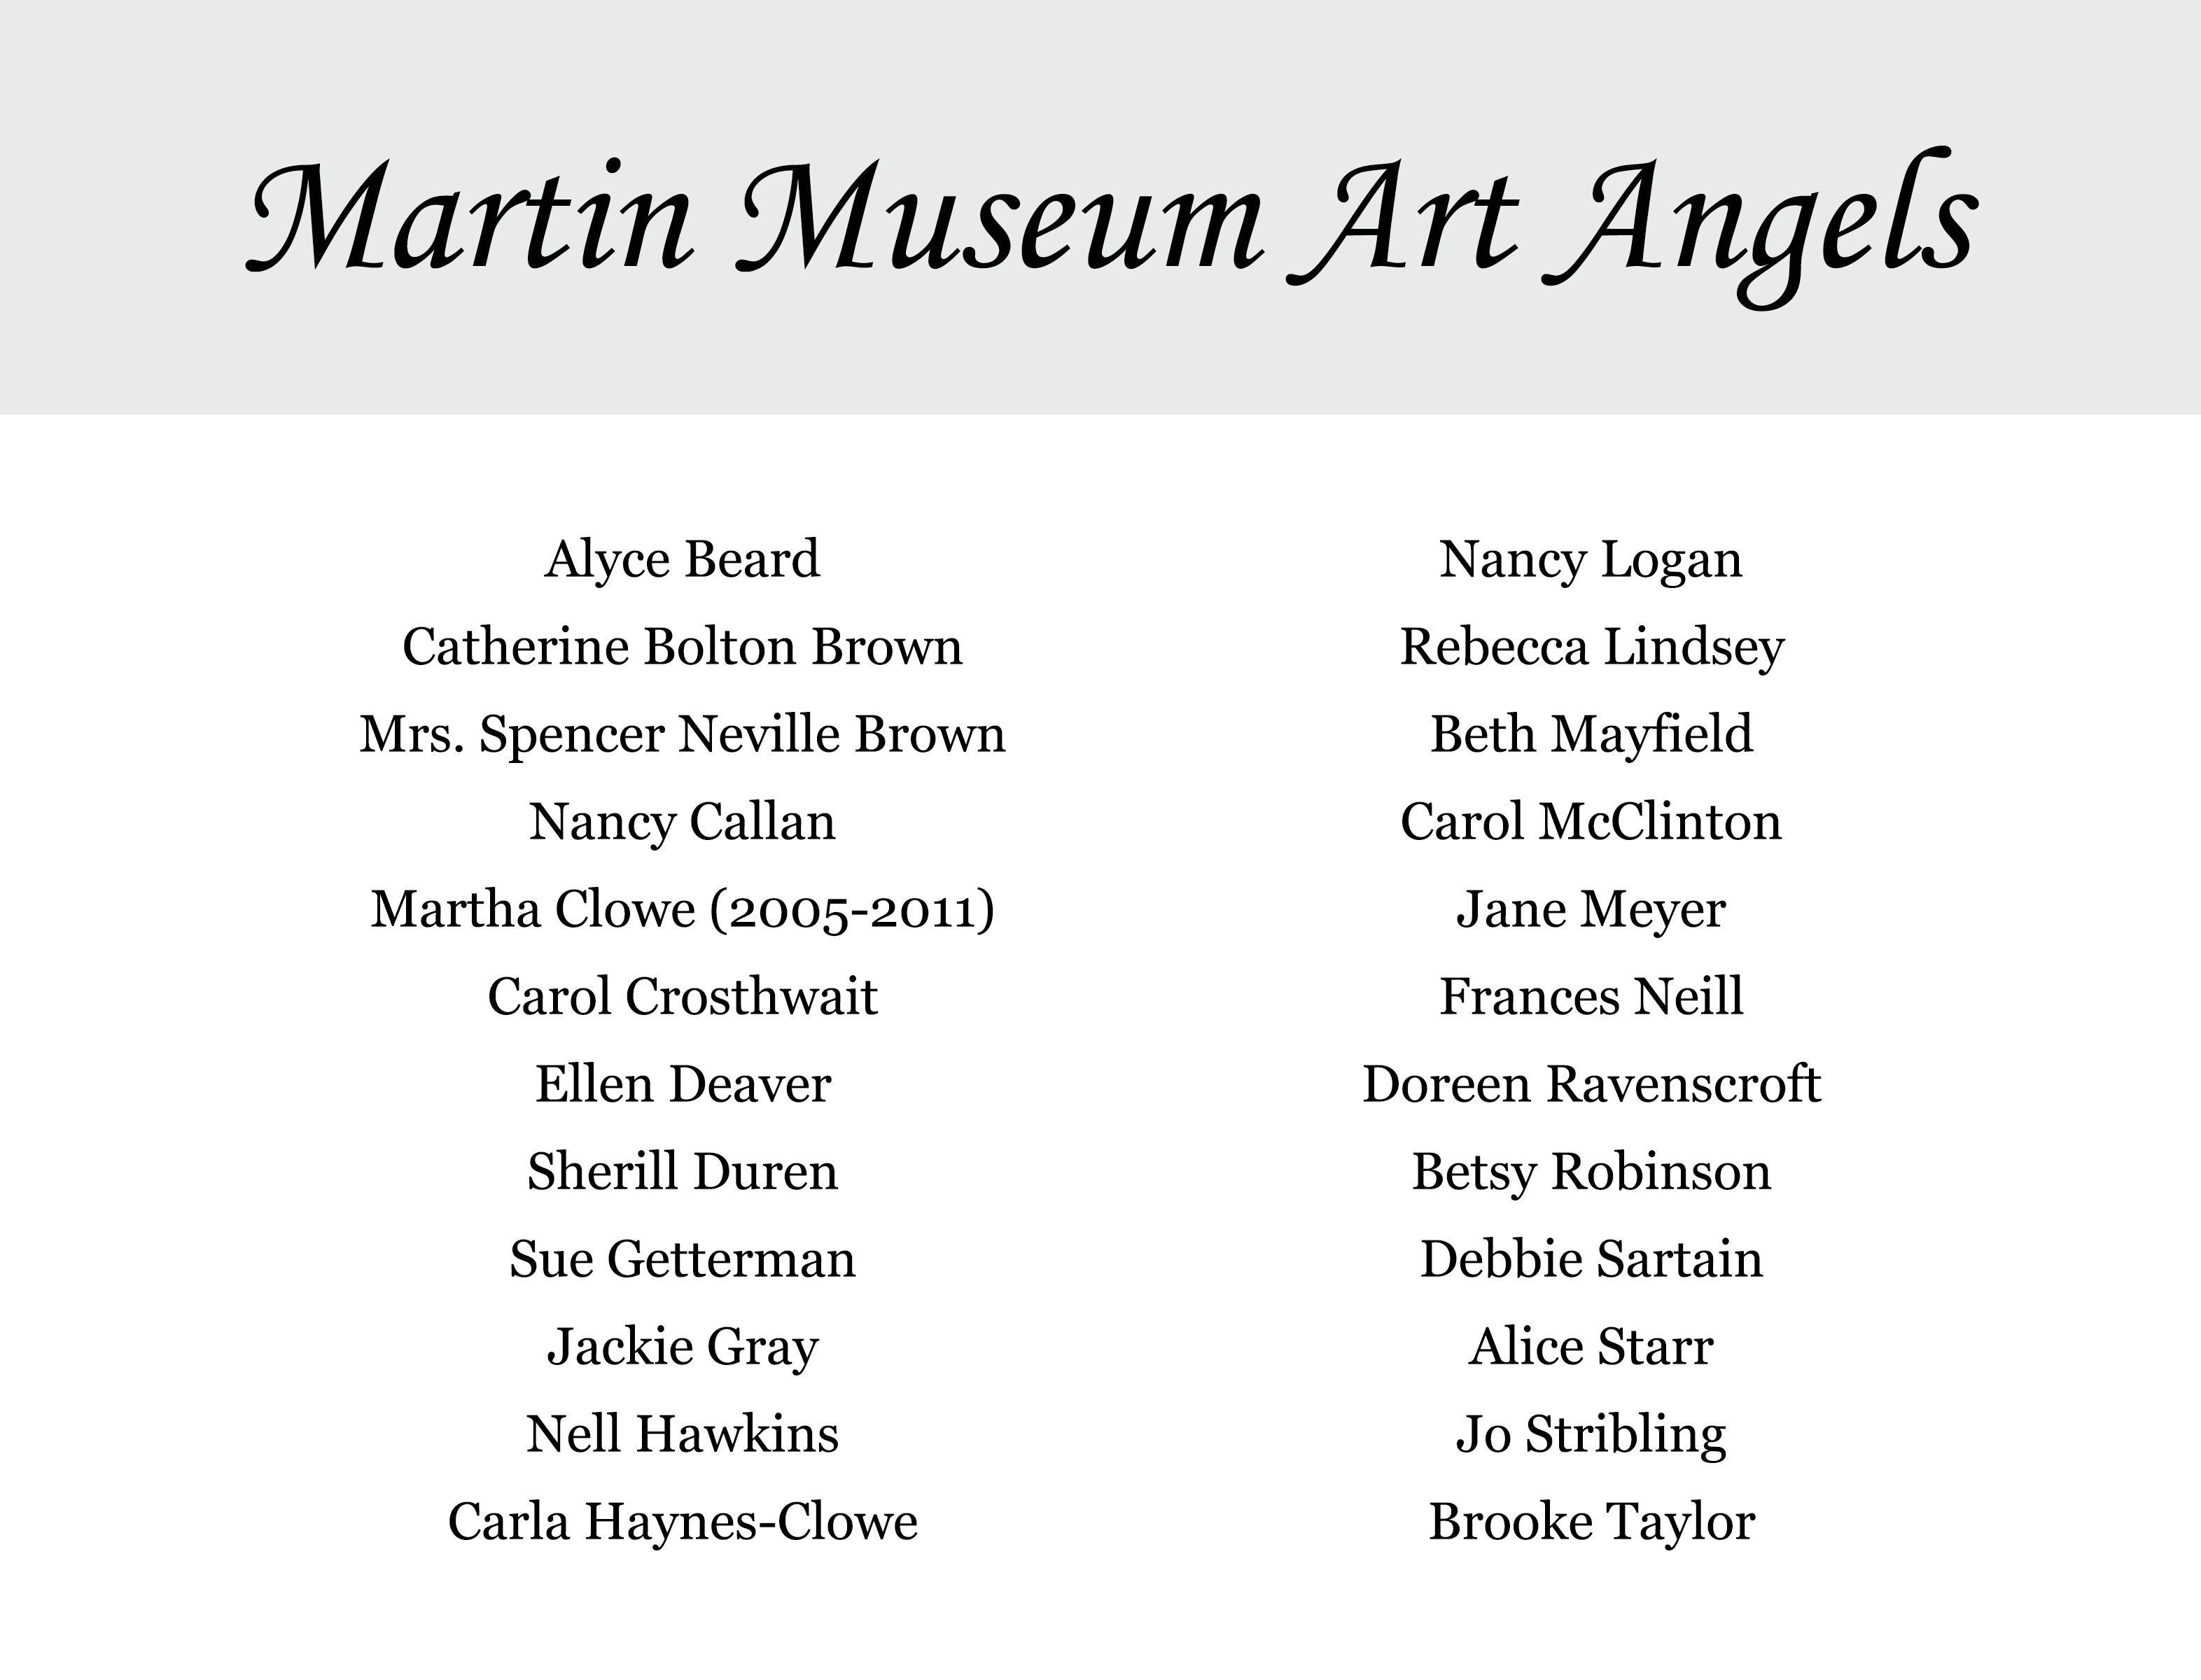 Graphical list of Martin Museum of Art Angels